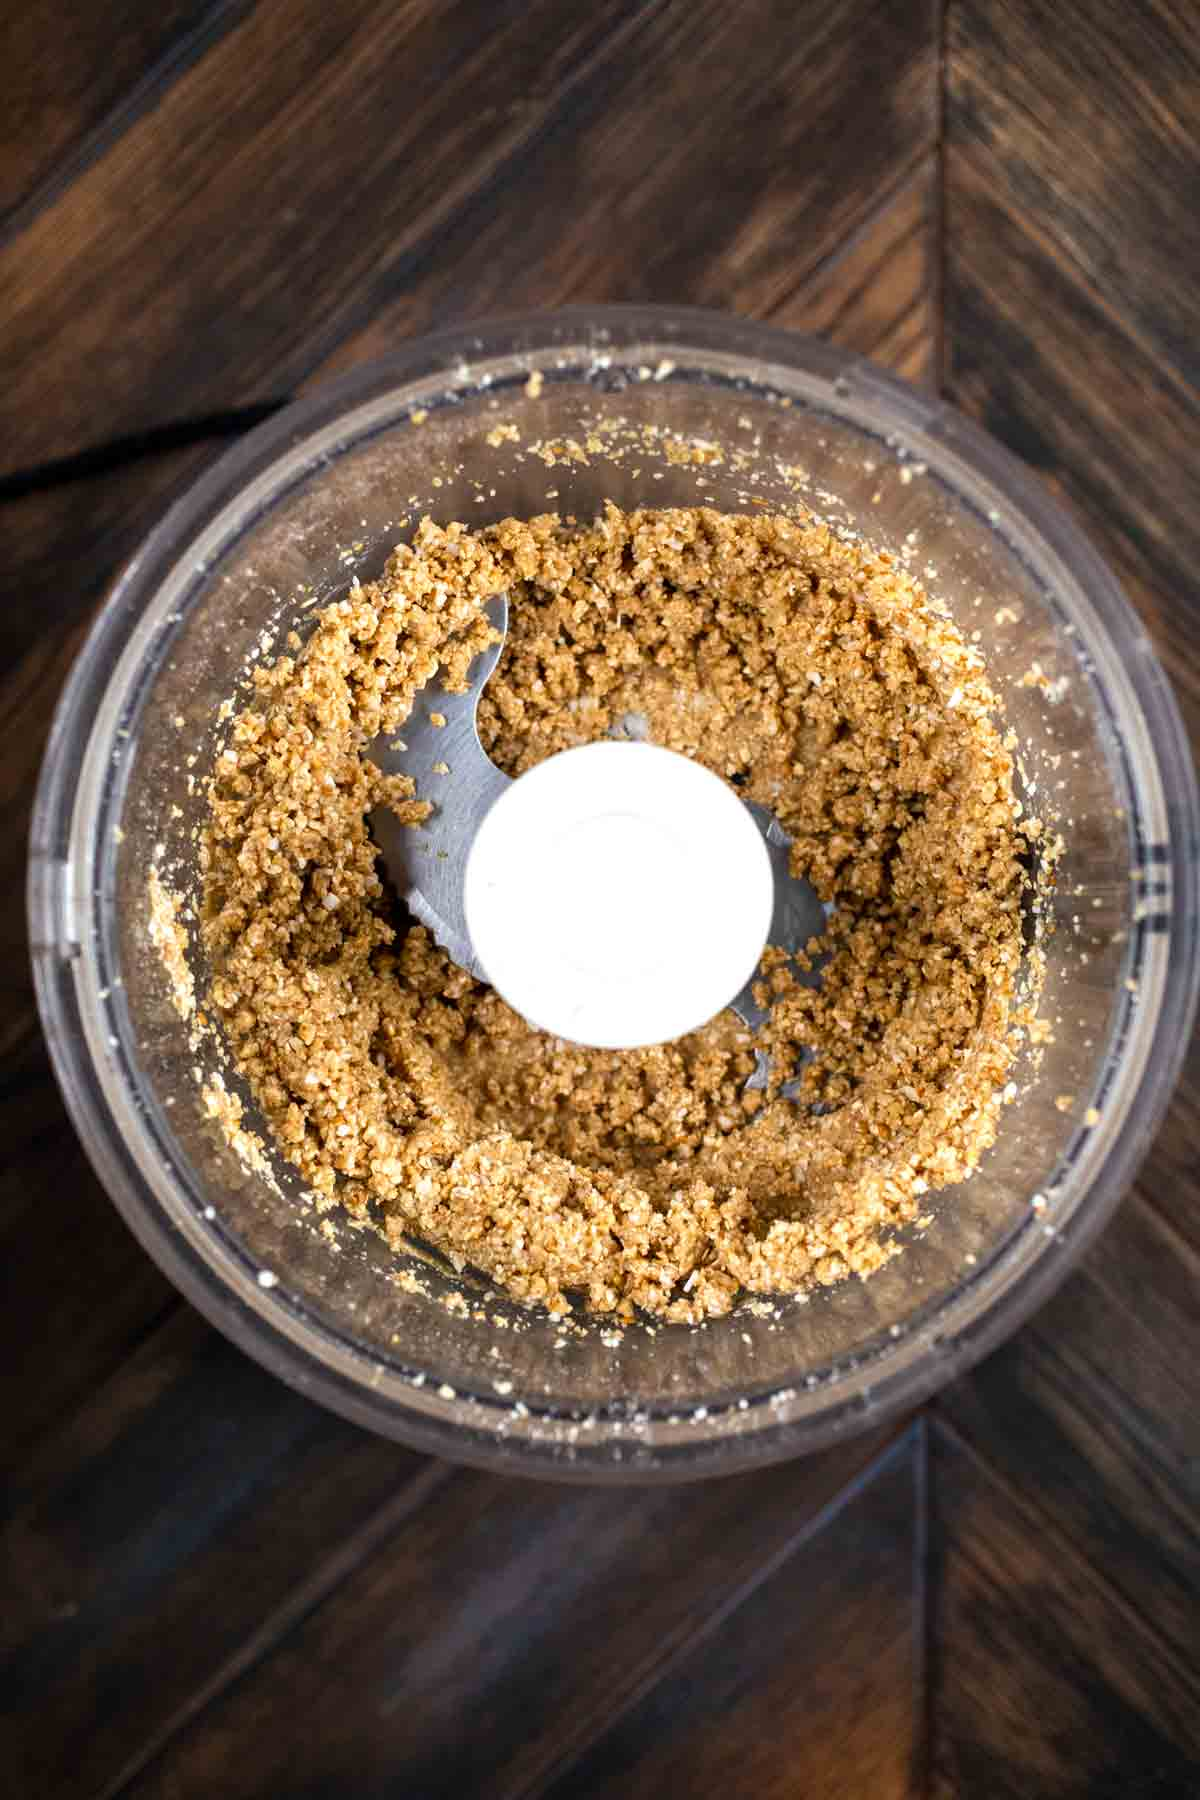 A food processor with a baked granola mixture.